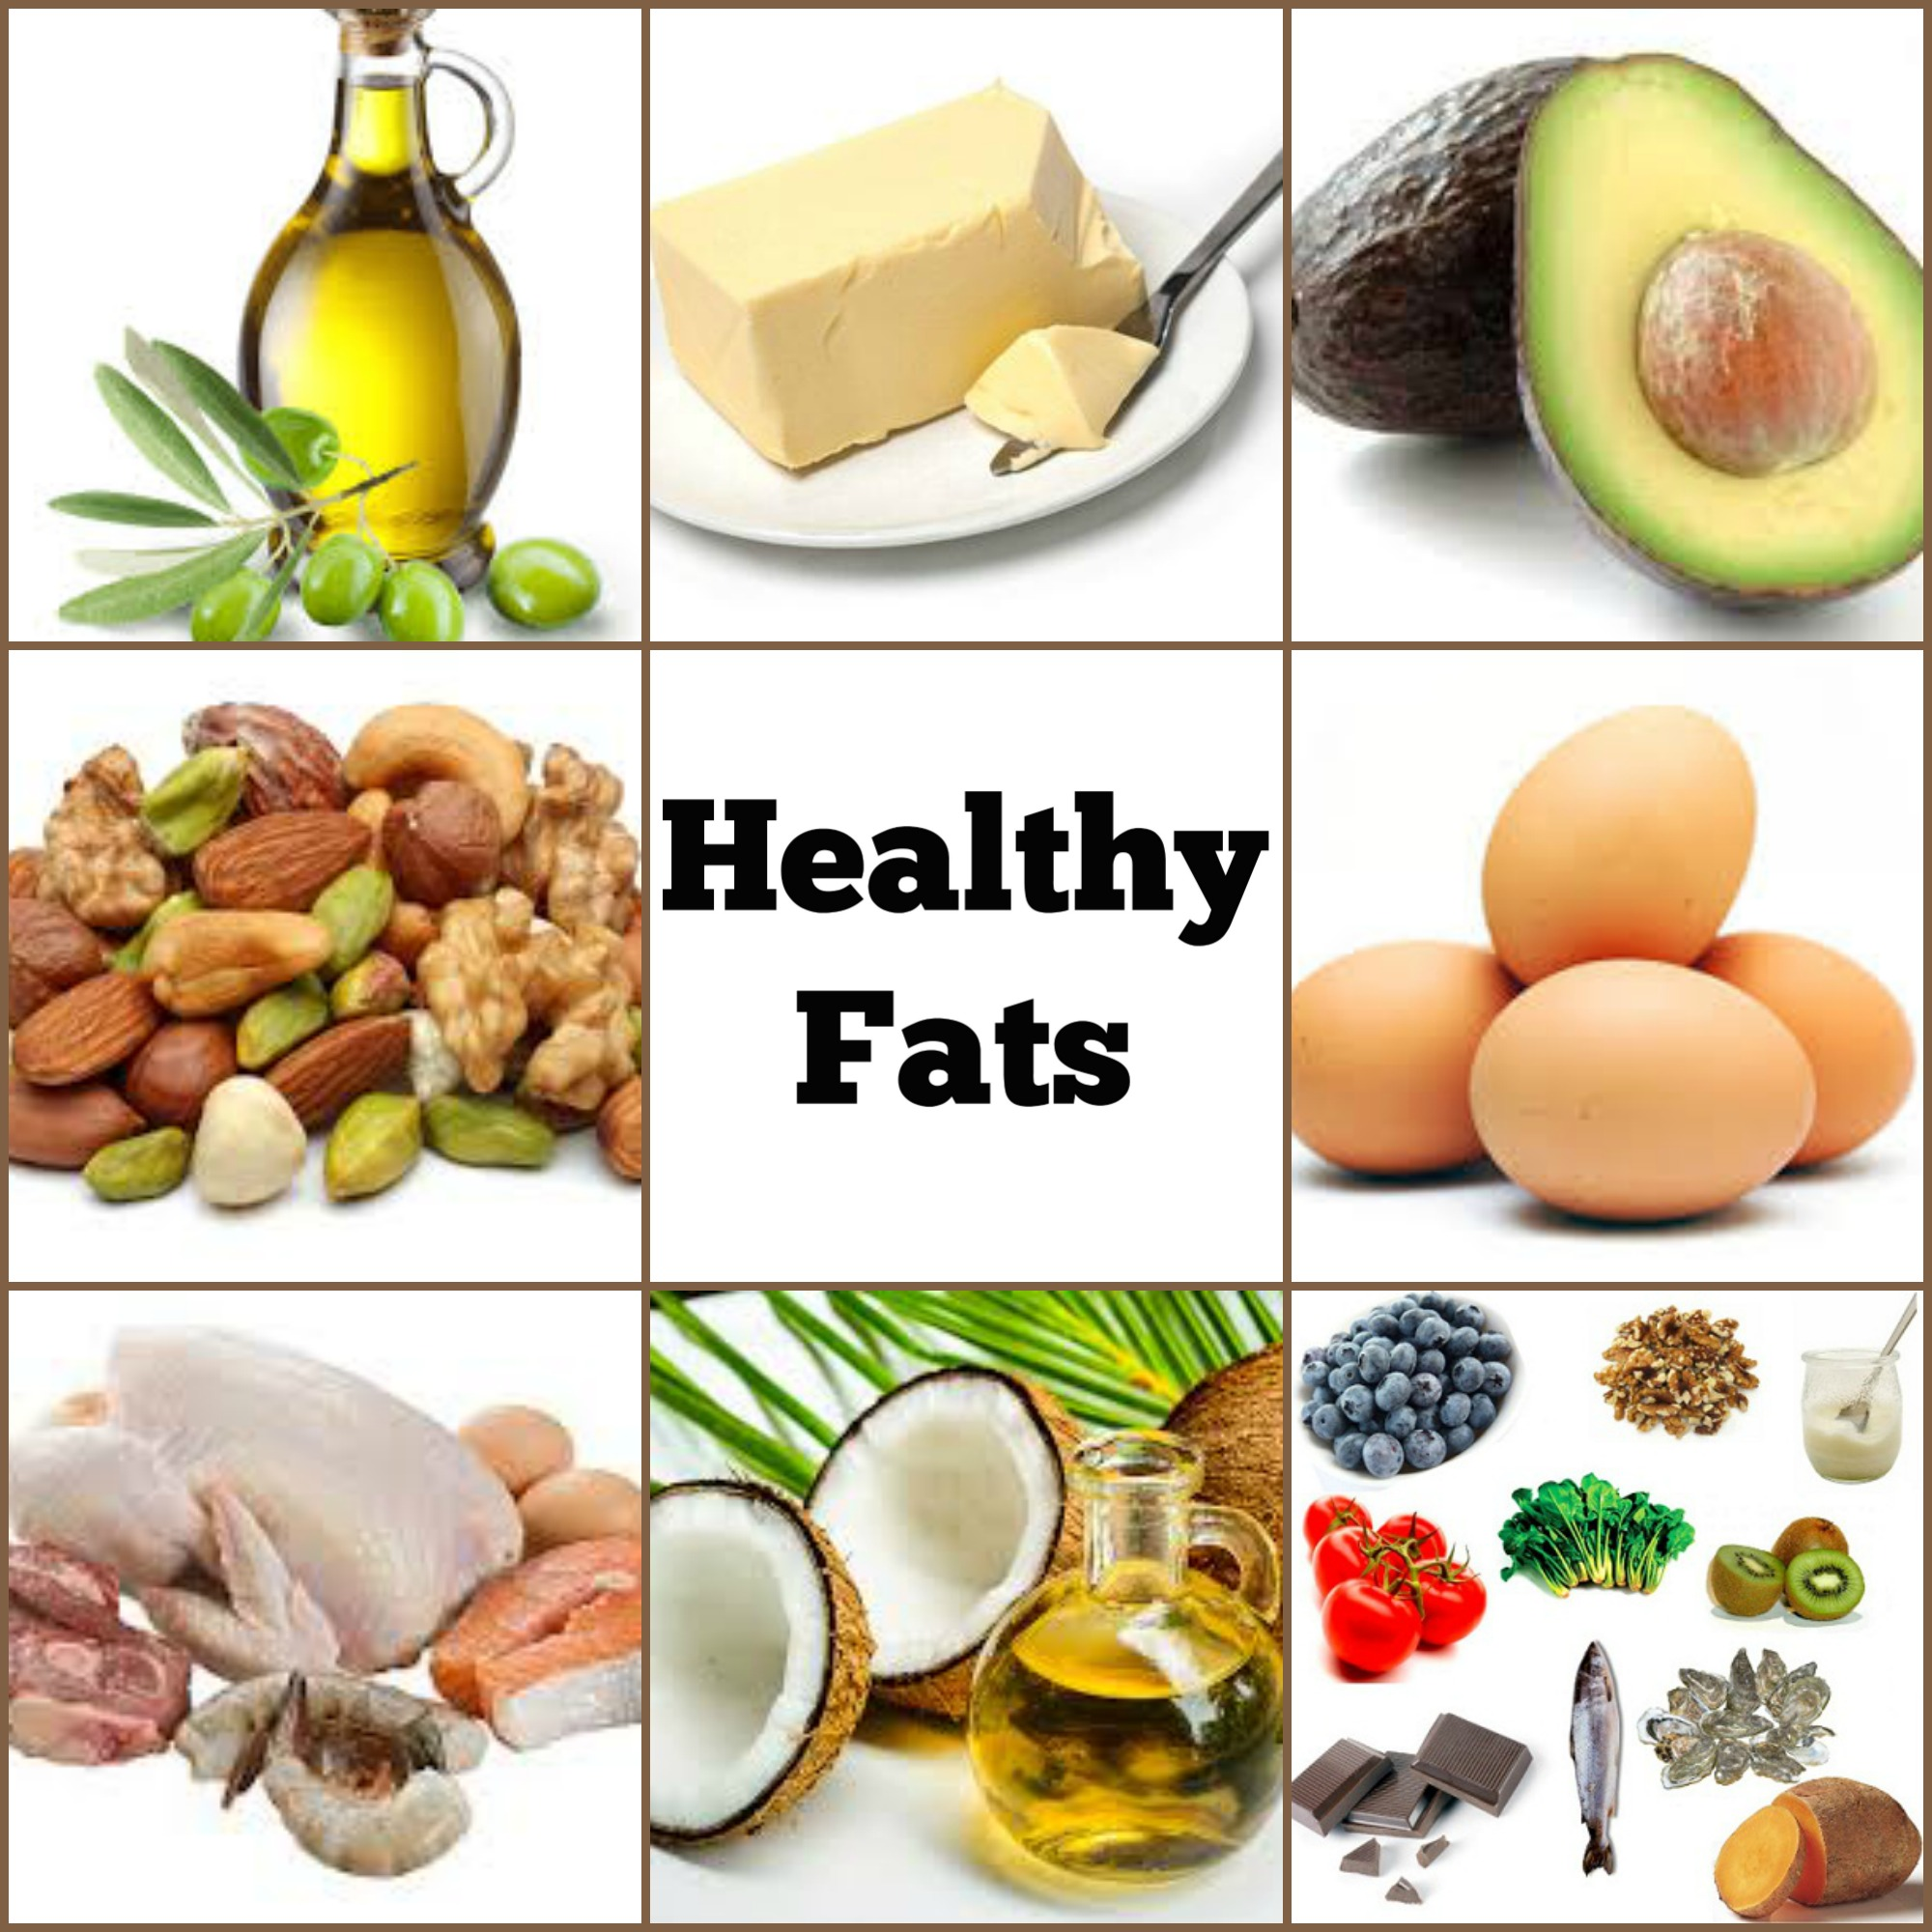 https://www.thegreatcoursesdaily.com/healthy-fats/